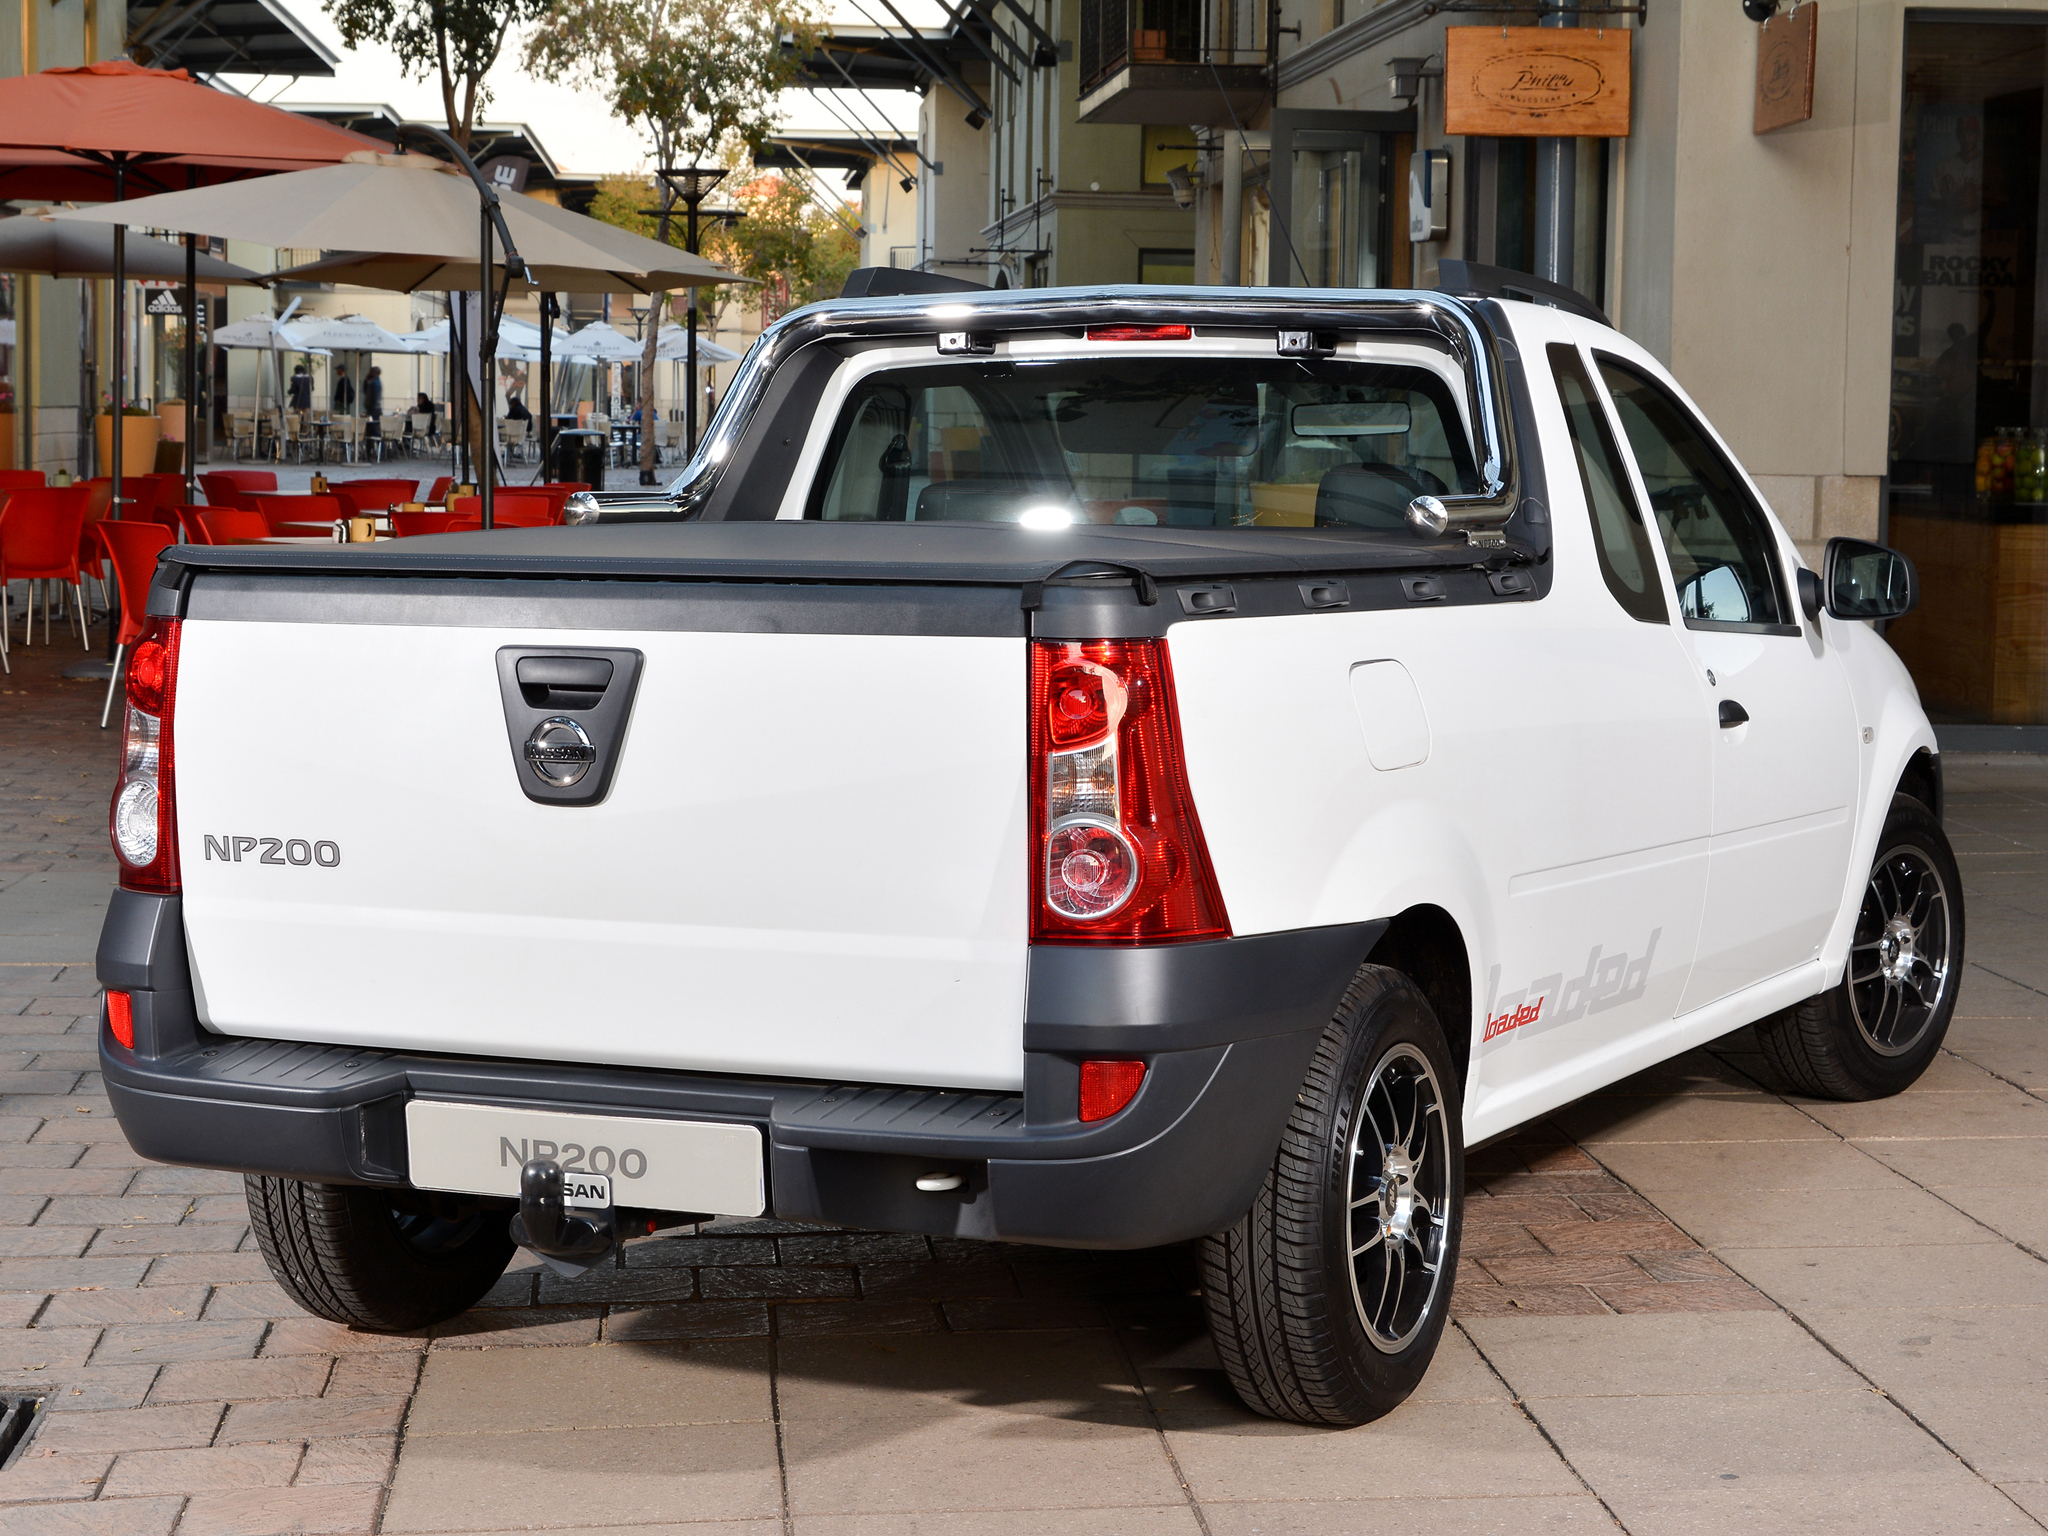 Nissan Van For Sale >> Nissan NP200 Is a Dacia Logan Pick-Up in South Africa - autoevolution